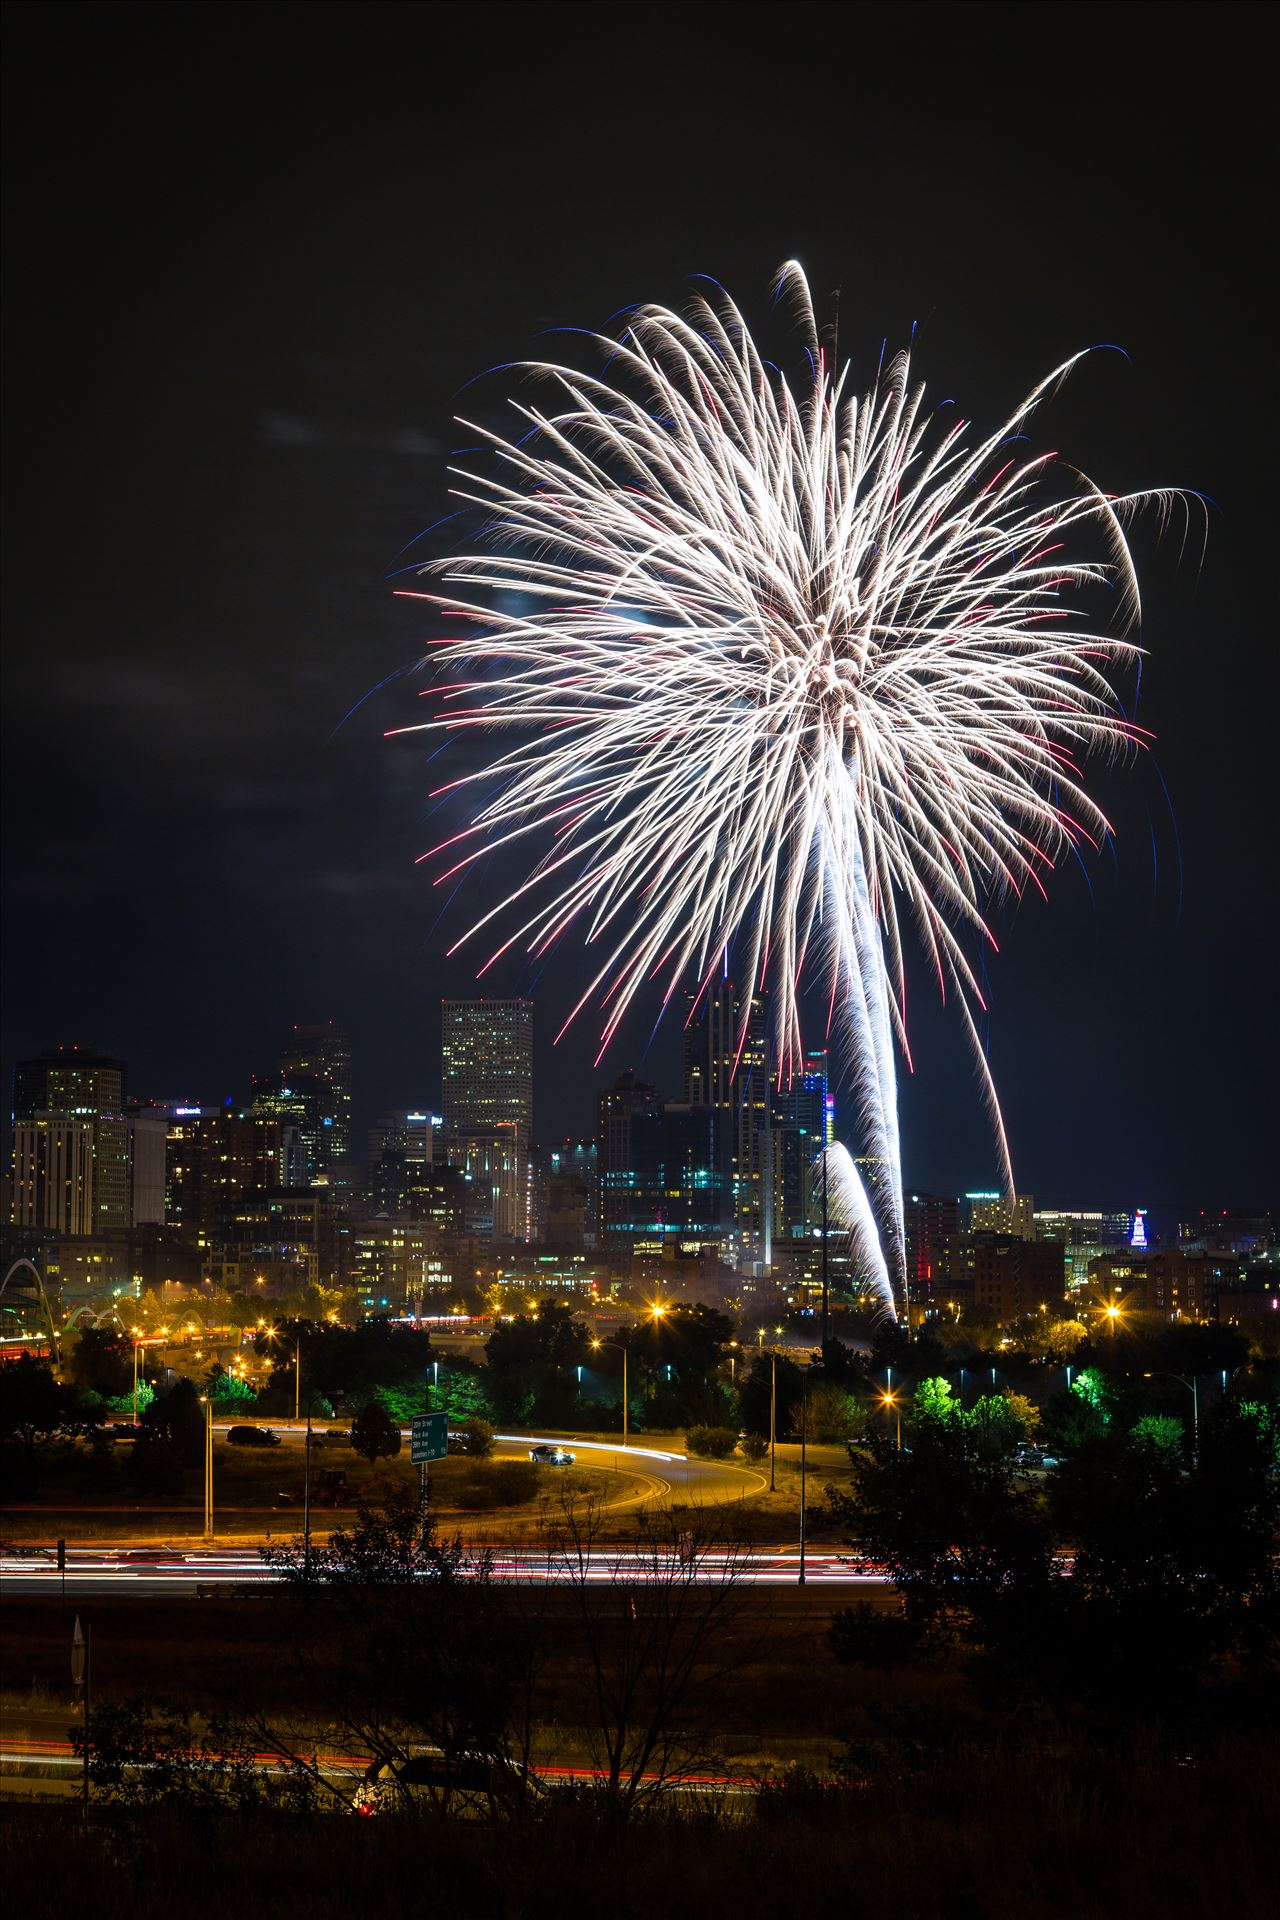 Elitch's Fireworks 2016 - 3 - Fireworks from Elitch Gardens, taken near Speer and Zuni in Denver, Colorado. by D Scott Smith